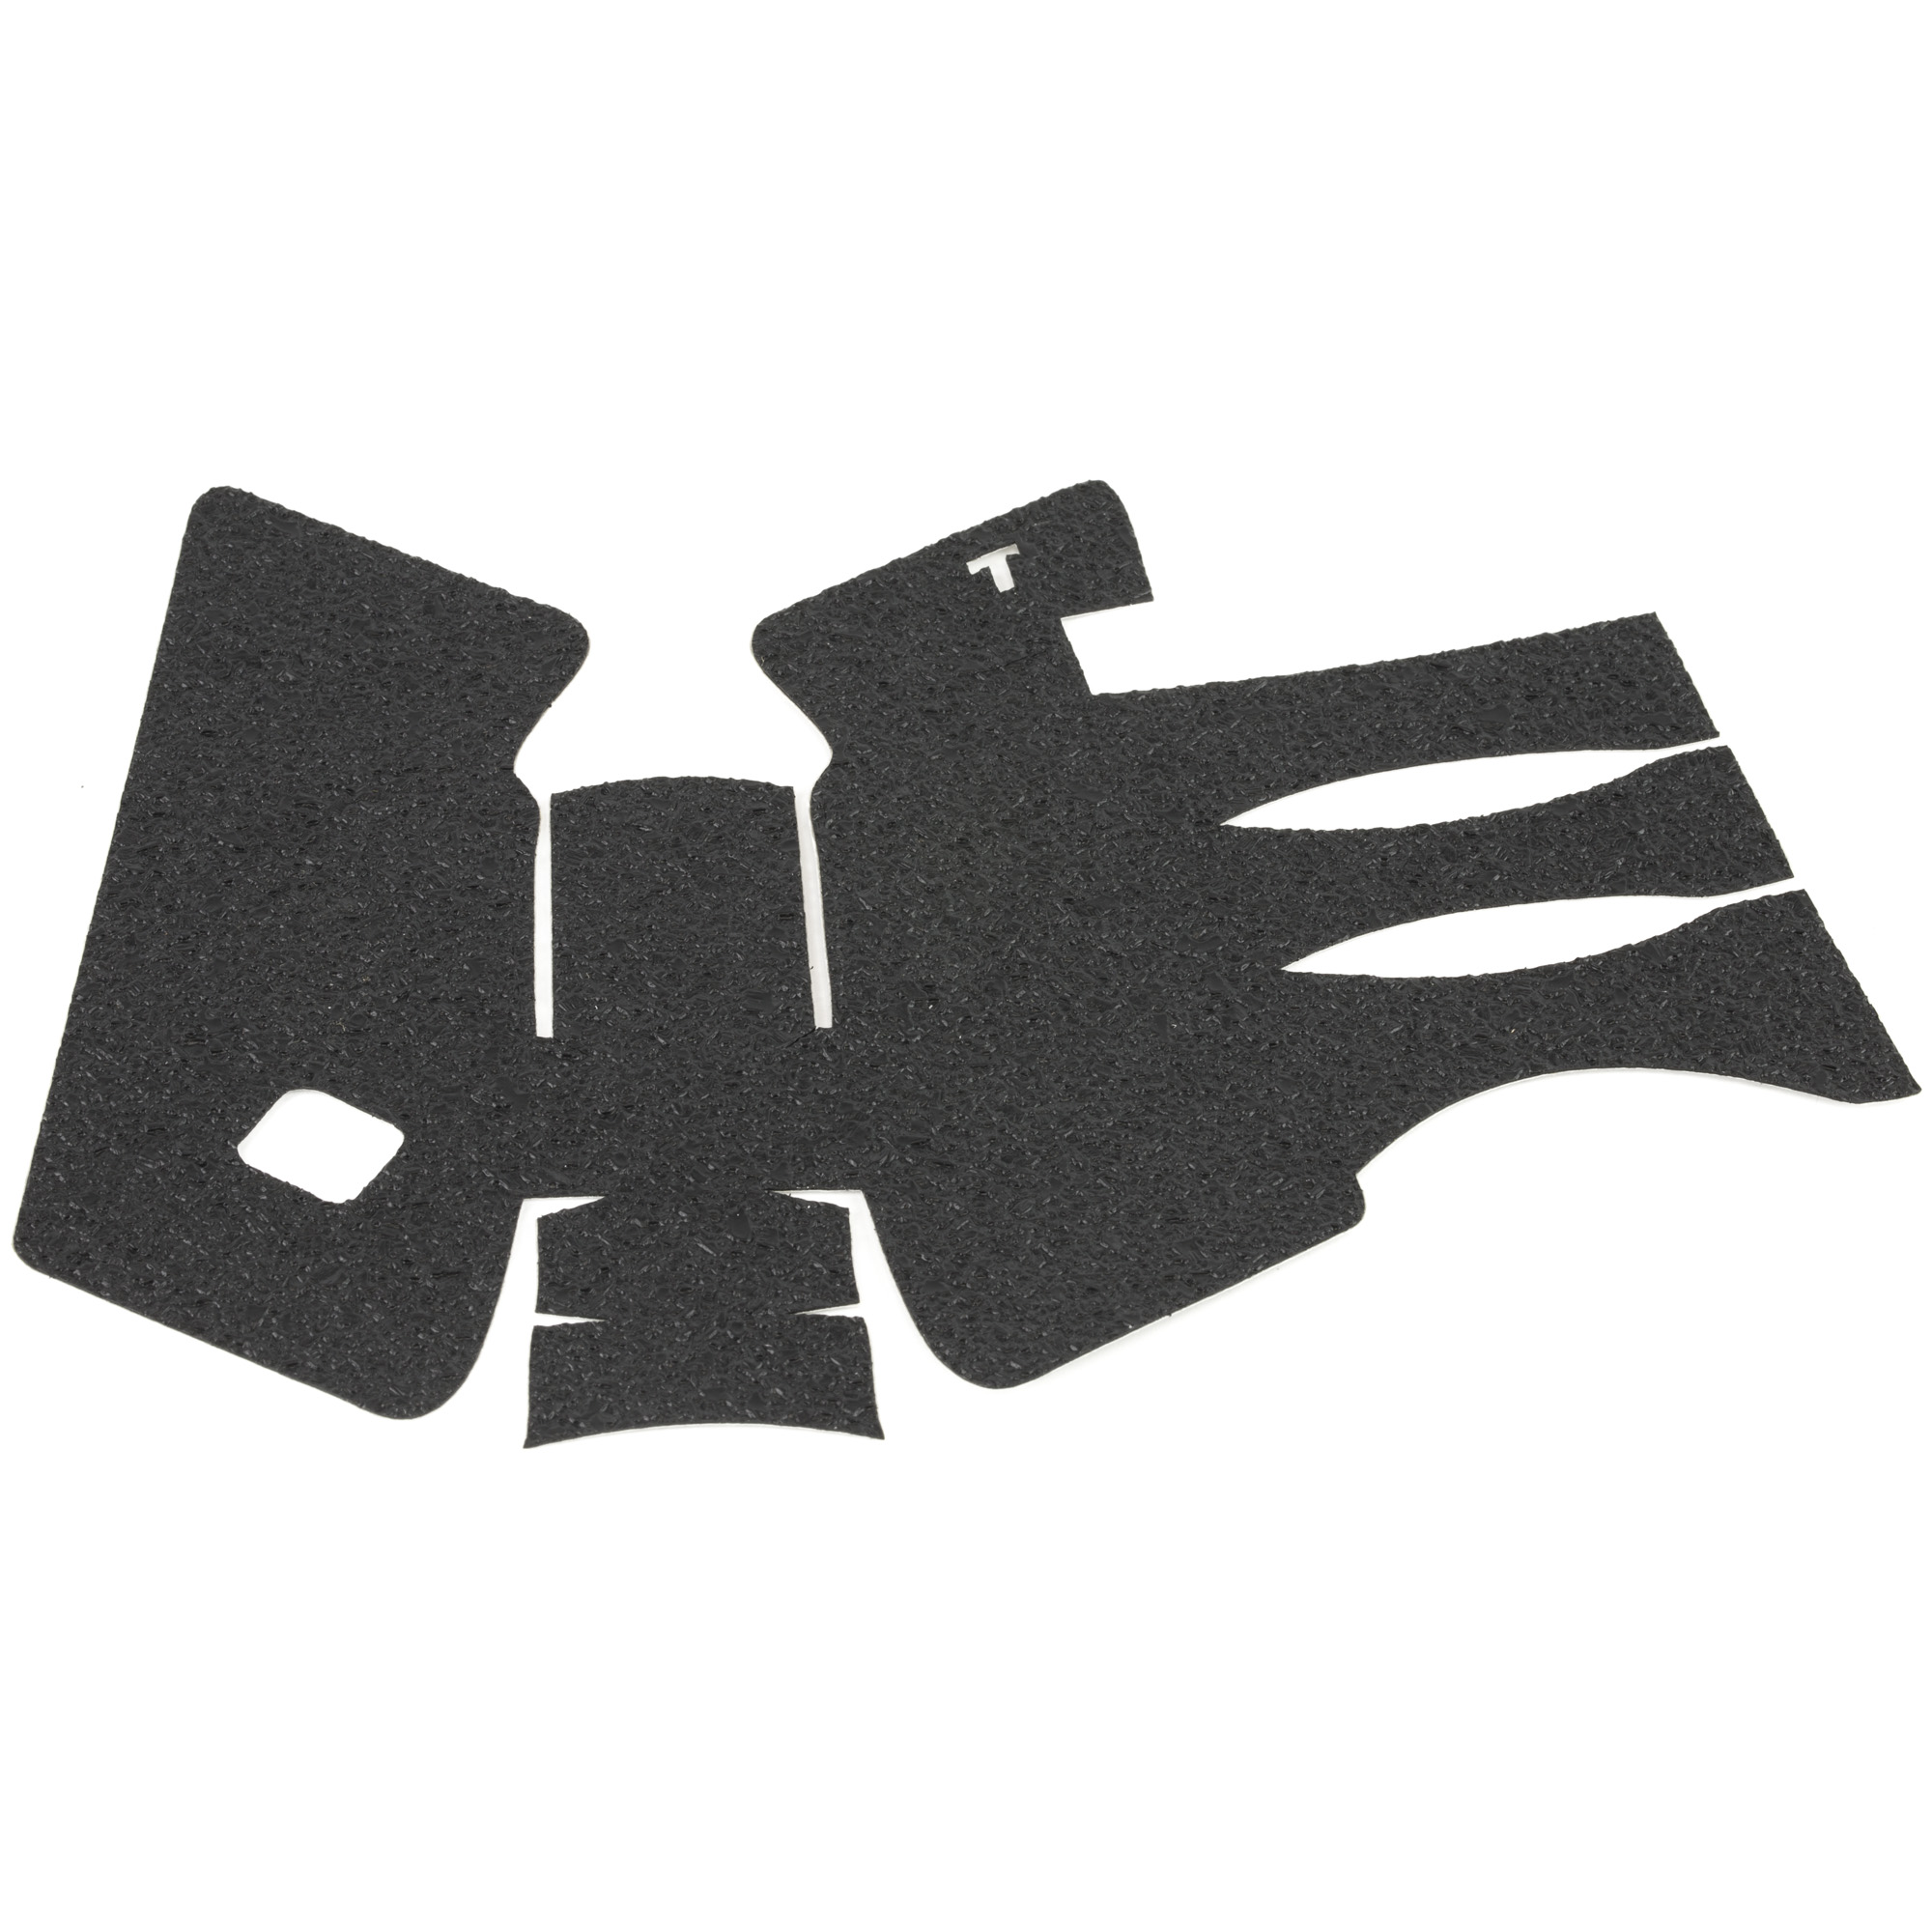 """TALON Grips for Glock 20"""" 21 Gen 2"""" 3. This rear wrap grip is available in both granulate and rubber textures. This grip provides full coverage on the side panels including above the thumb rest"""" ample coverage on the backstrap"""" and three finger wraps for the finger groves under the trigger guard. This grip has a logo cutout for the Glock emblem on the left side of the handle. This grip sticks extremely well even with the Rough Textured Frame (RTF)."""